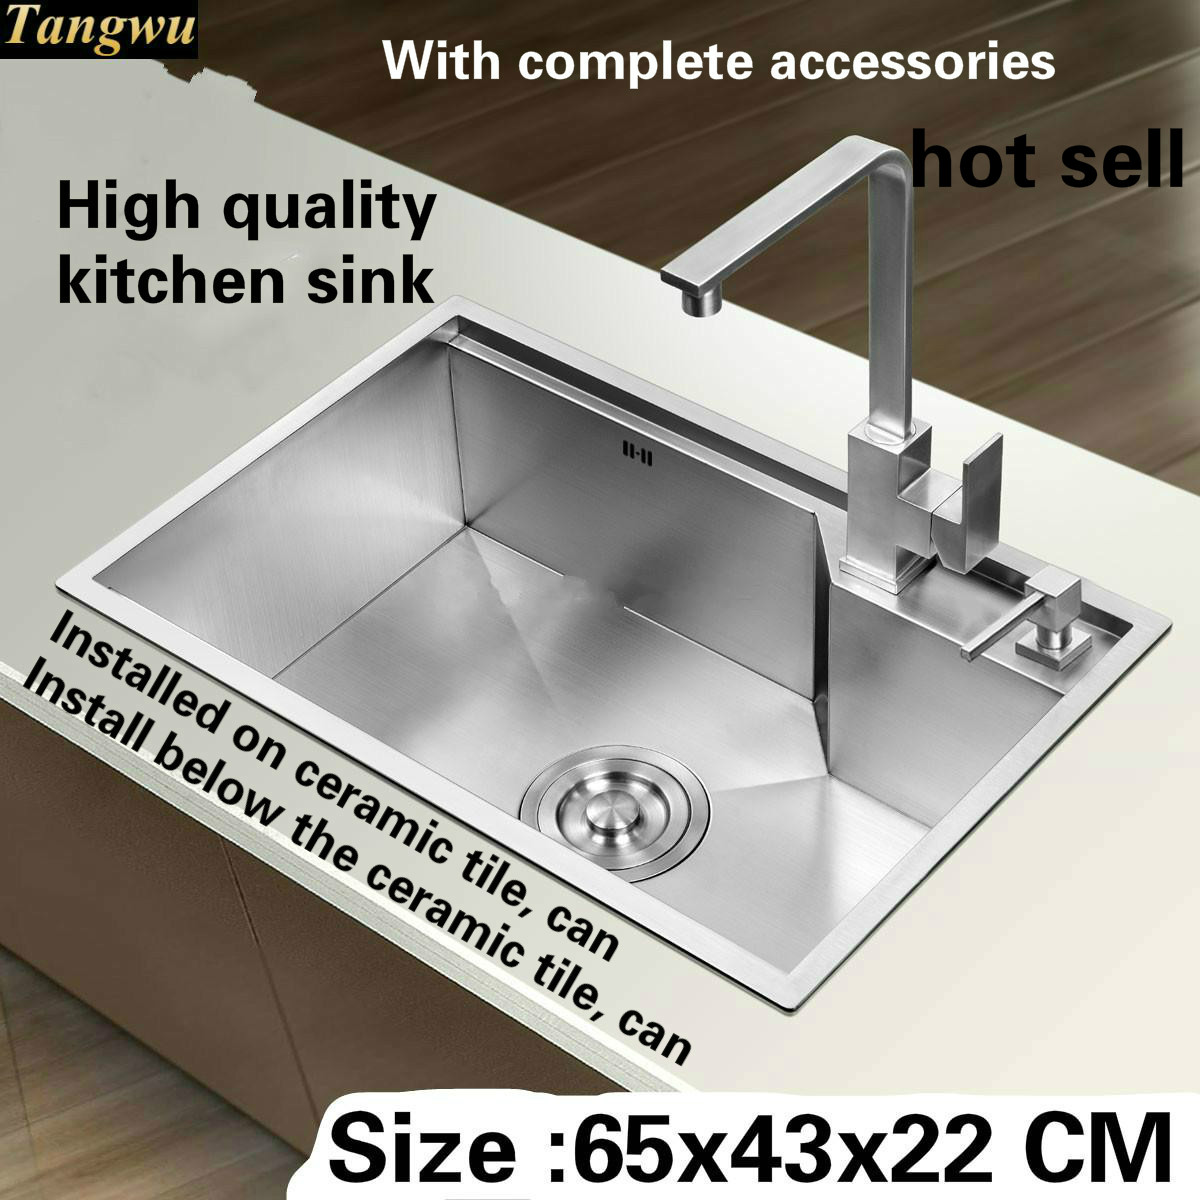 Tangwu Apartment Quality 4 Mm Thick Food-grade 304 Stainless Steel Kitchen Sink Better Handmade Single Slot Durable 65x43 CM